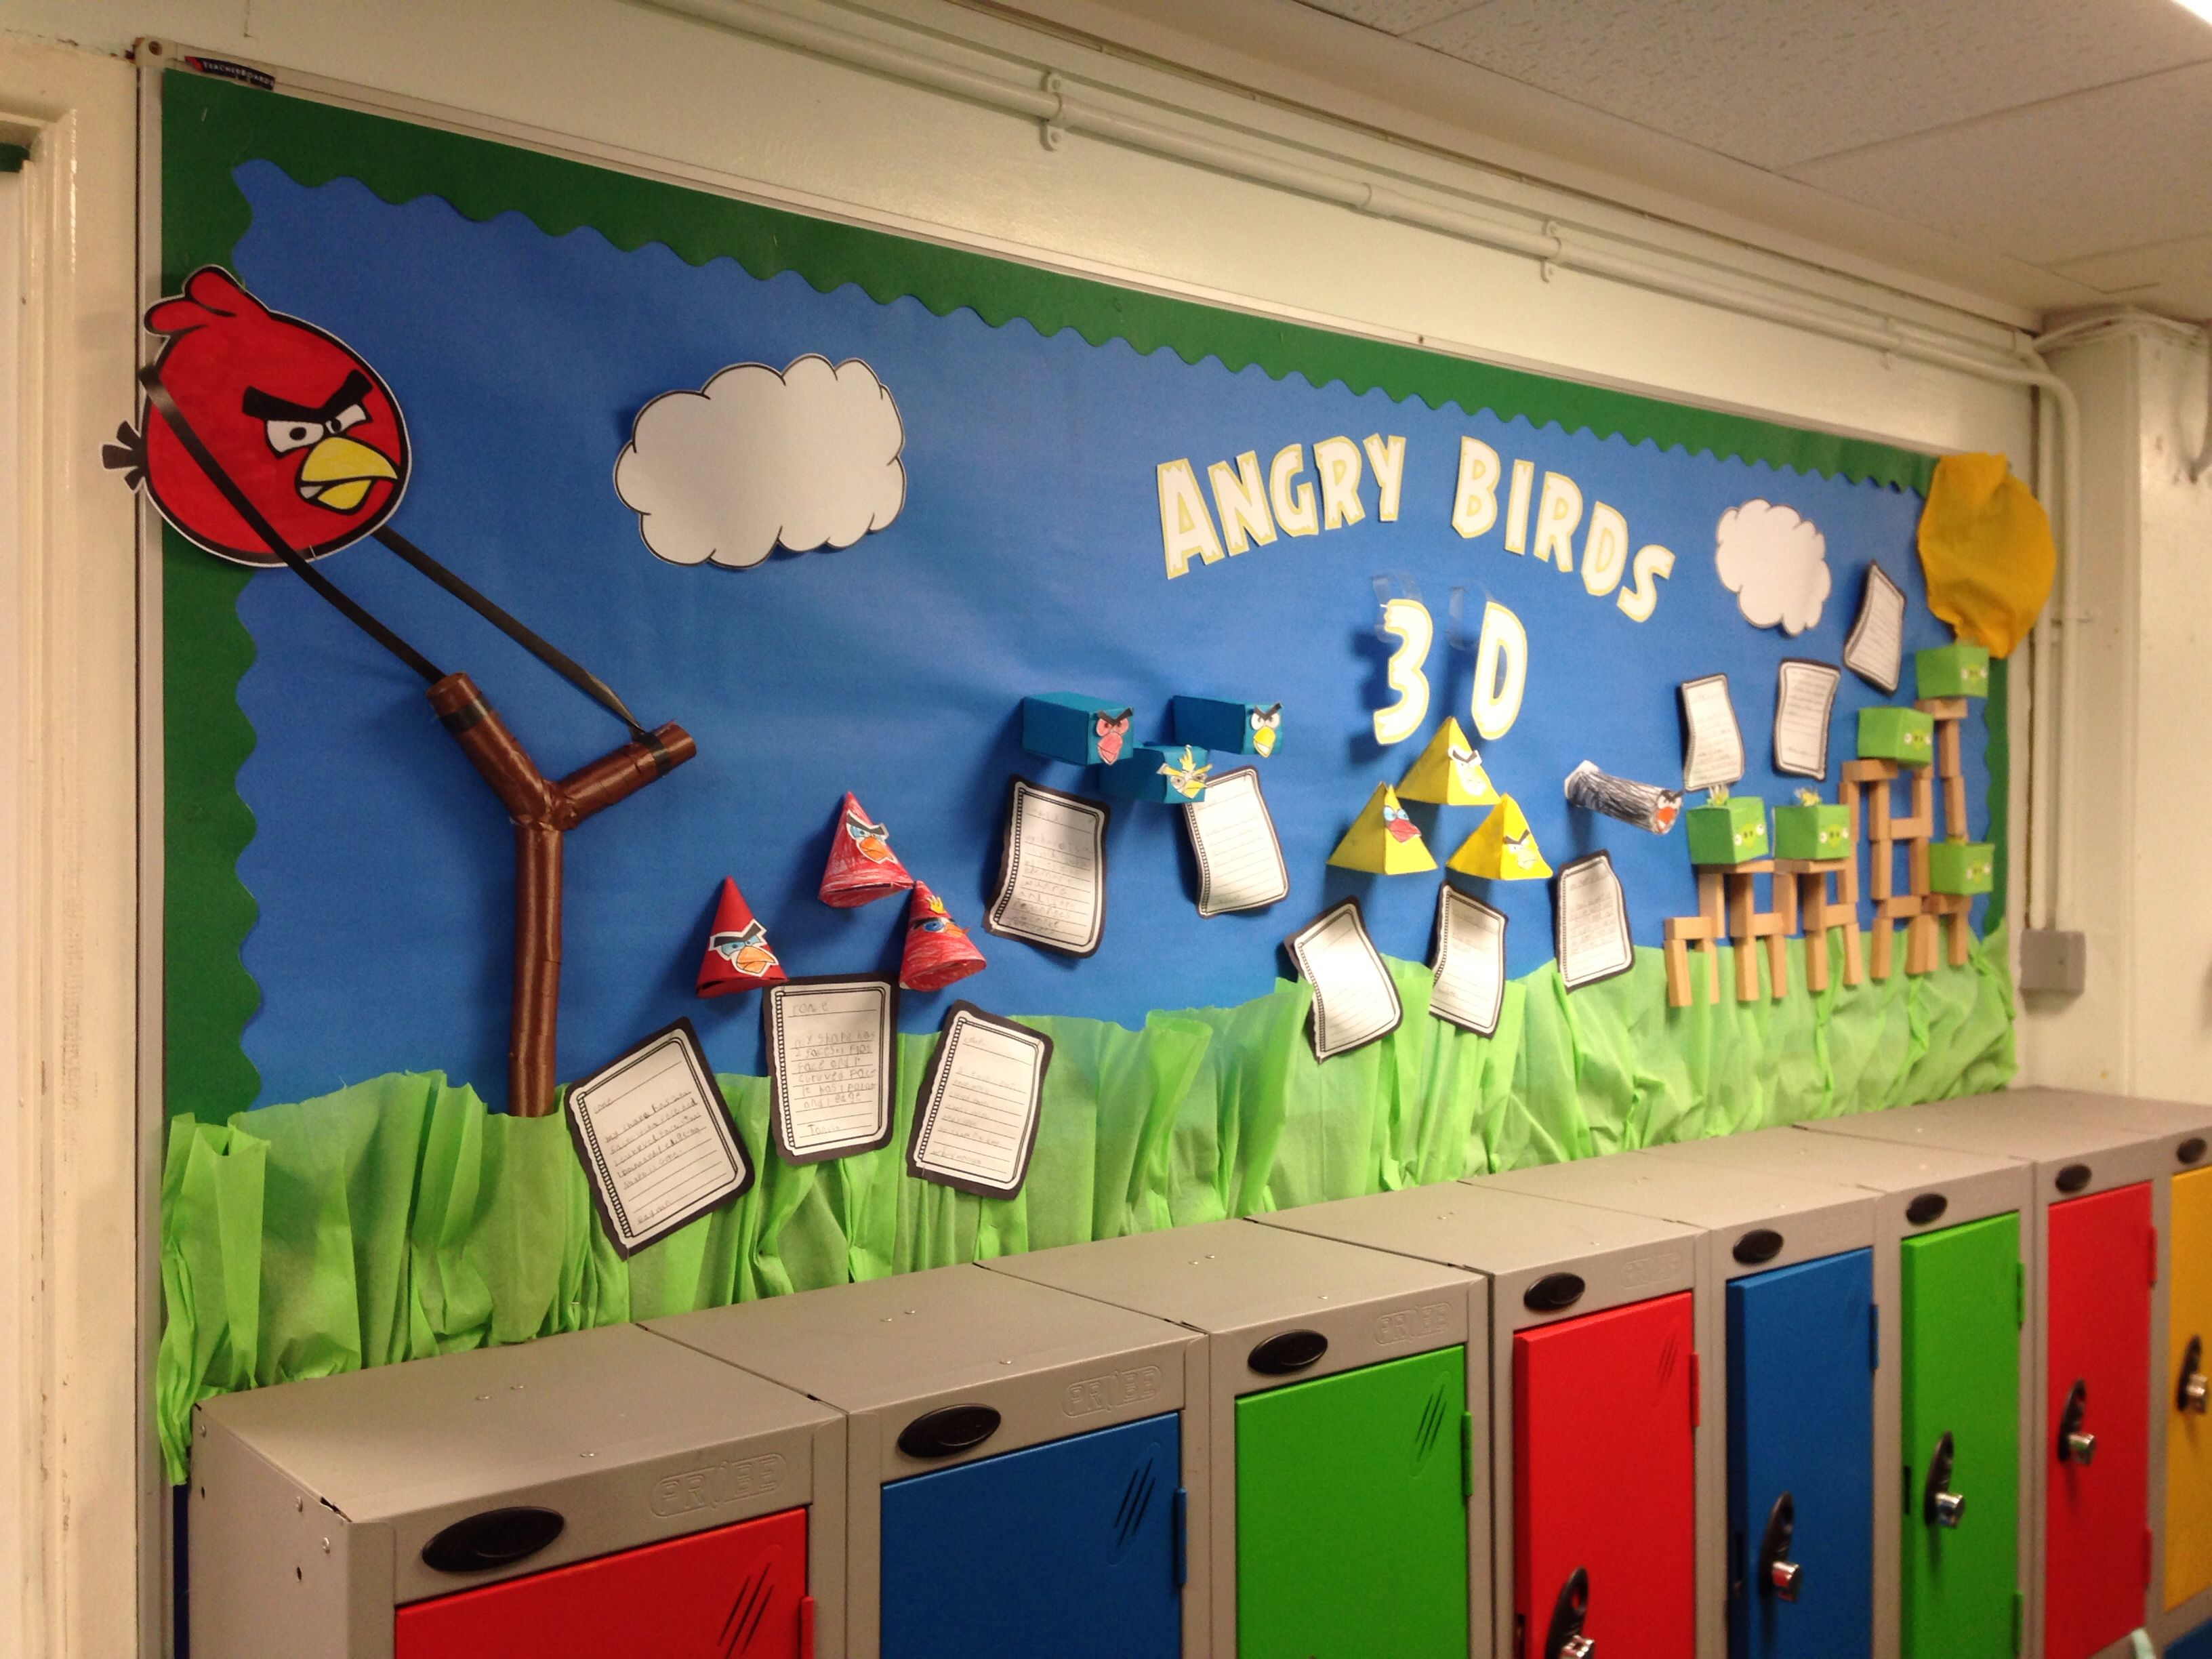 Angry Birds 3d Shapes Display Kids Absolutely Adore